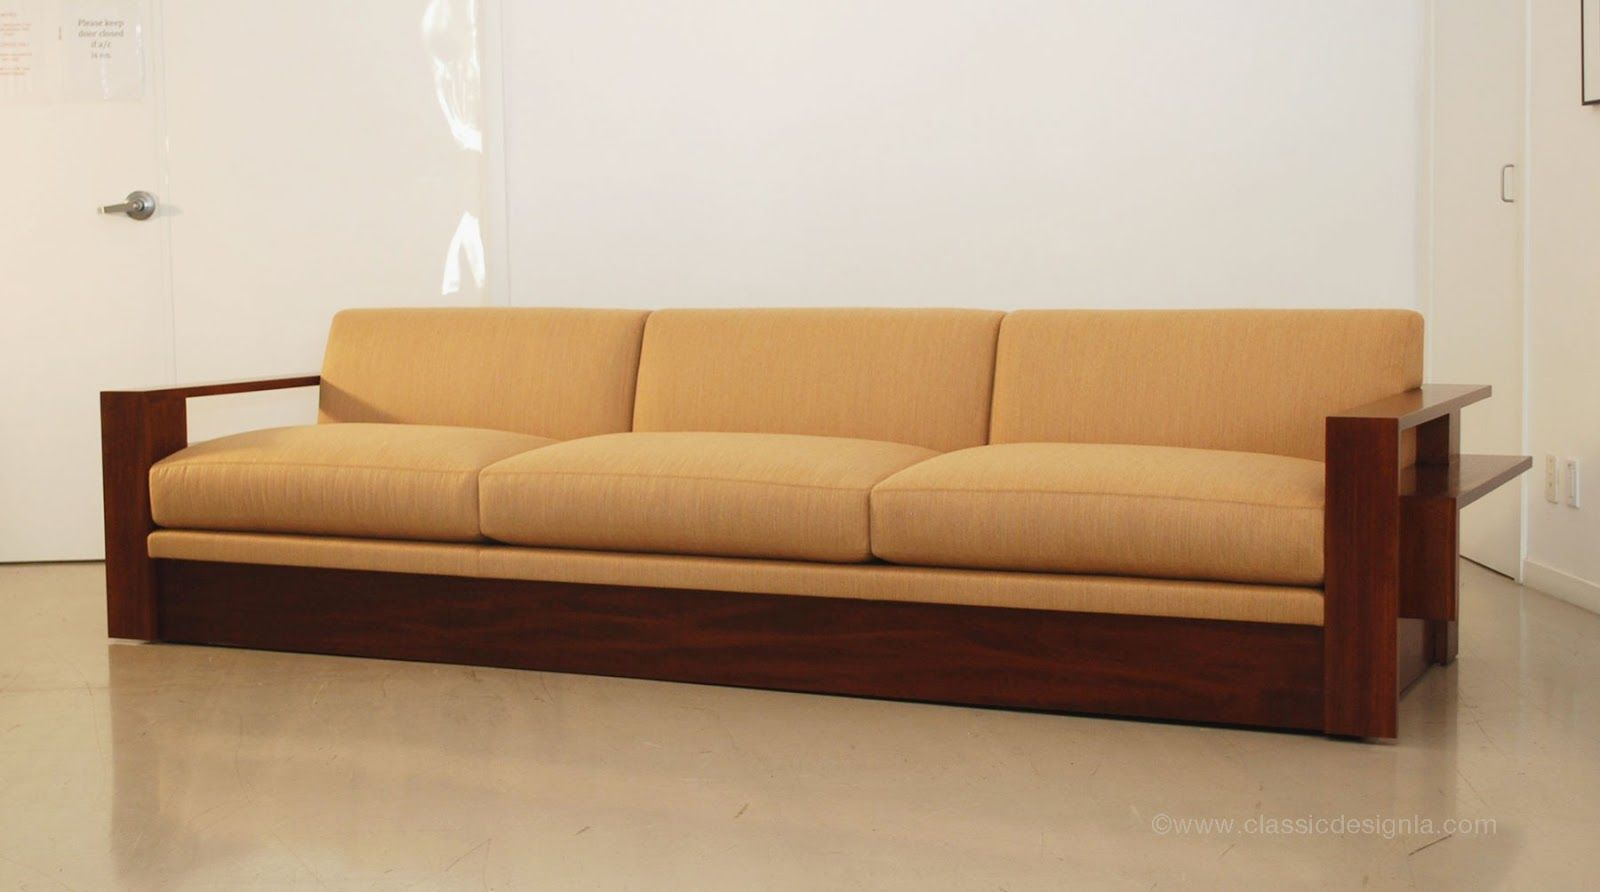 Classic design is a custom upholstery furniture maker for Furniture design sofa